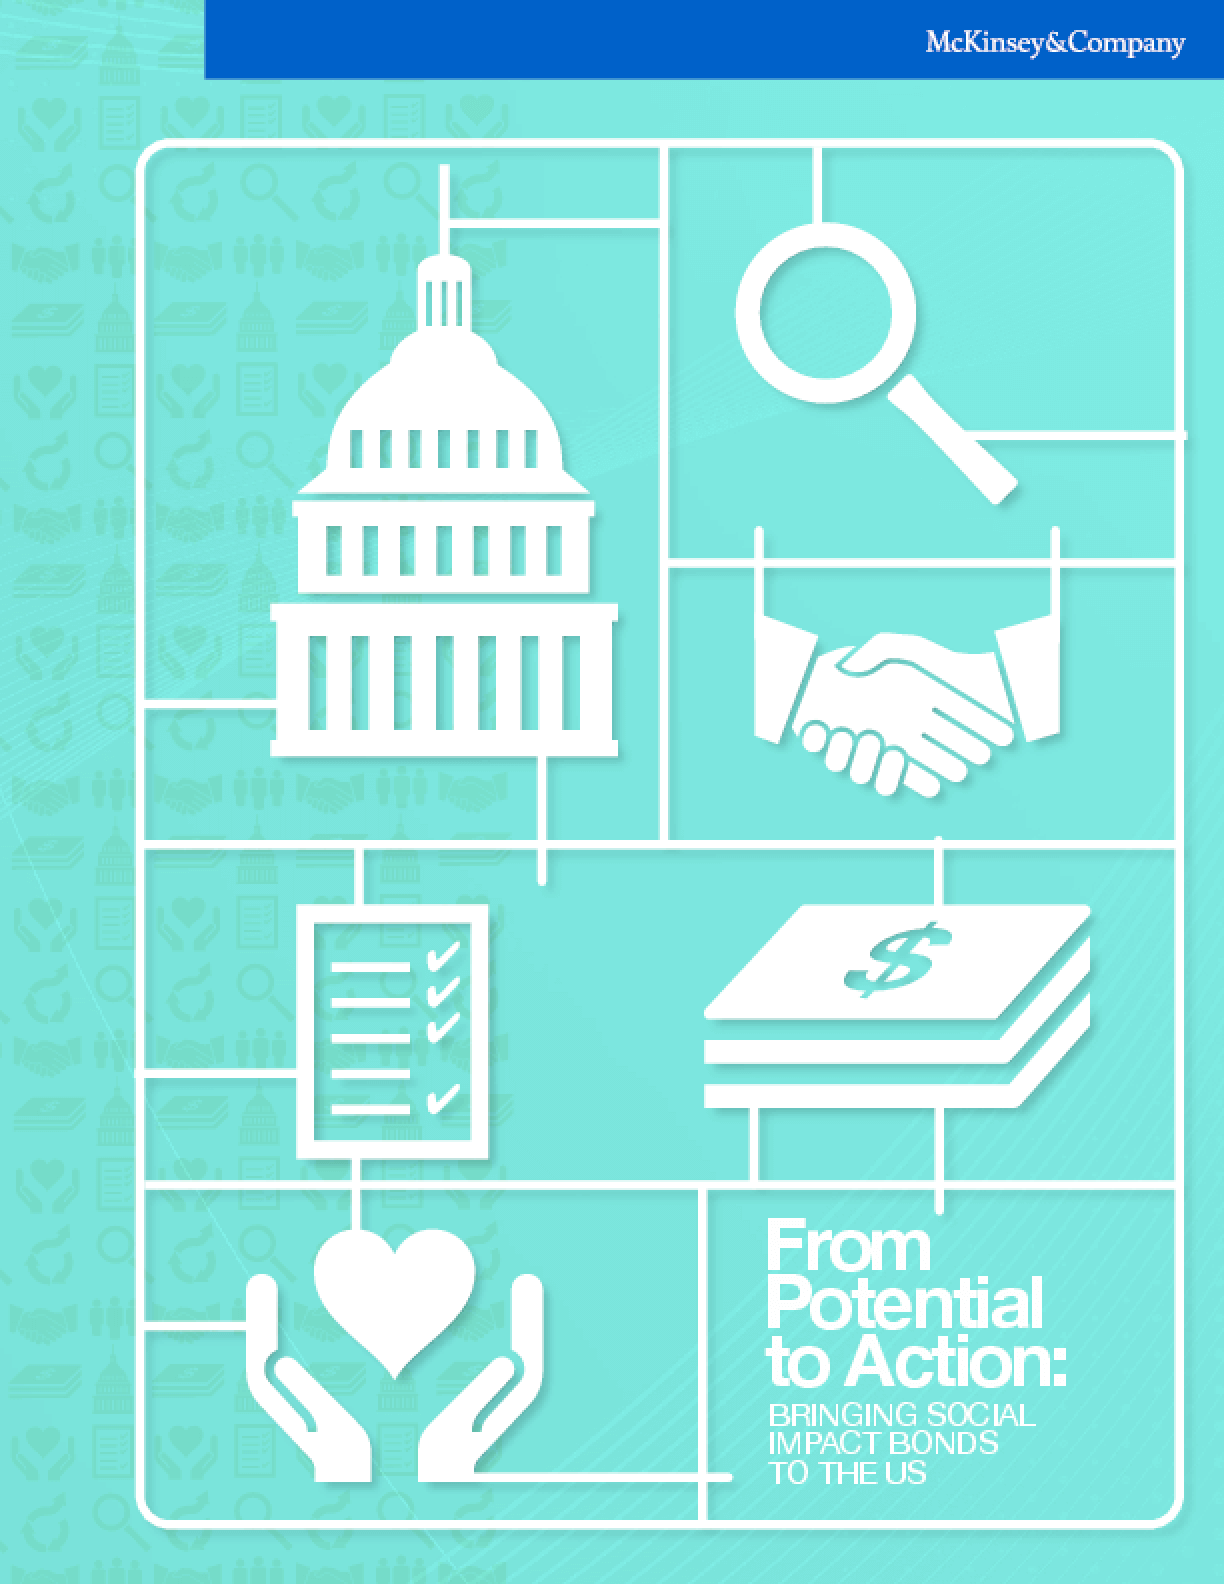 From Potential to Action: Bringing Social Impact Bonds to the U.S.